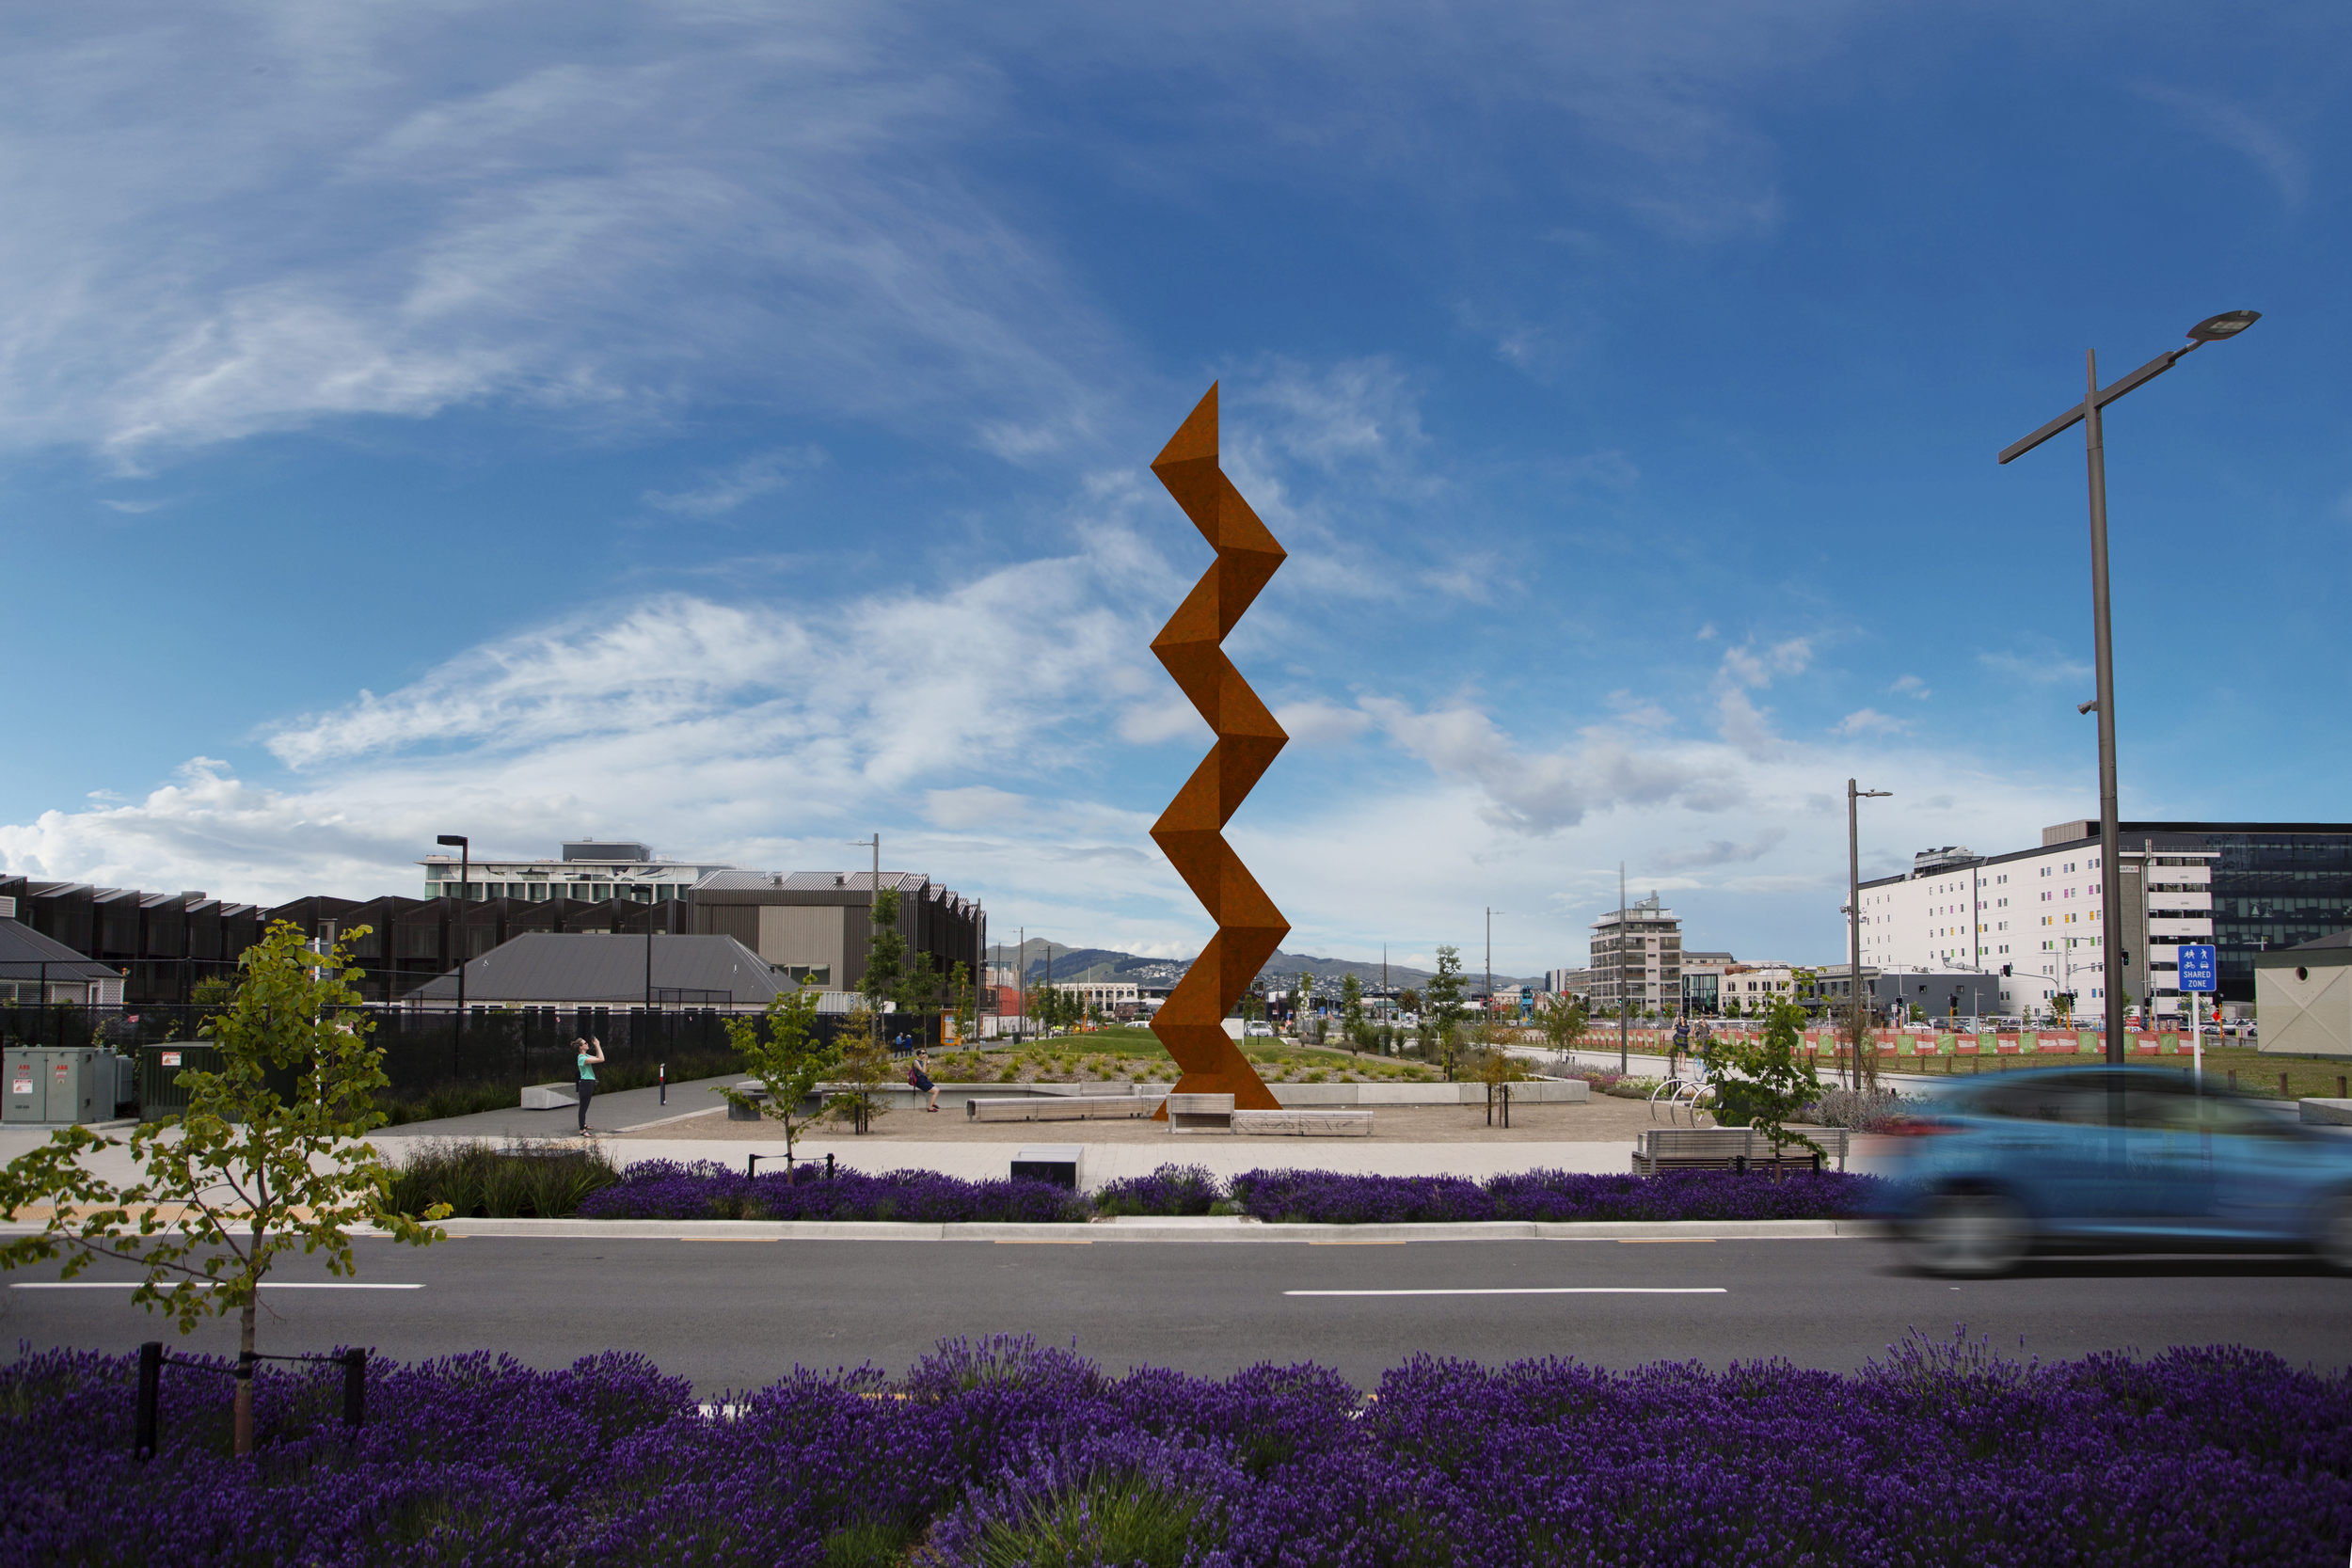 Sēmisi Fetokai Potauaine  VAKA 'A HINA  2019 Rauora Park, Christchurch (site render – day). Image courtesy of the artist. Commissioned by SCAPE Public Art.